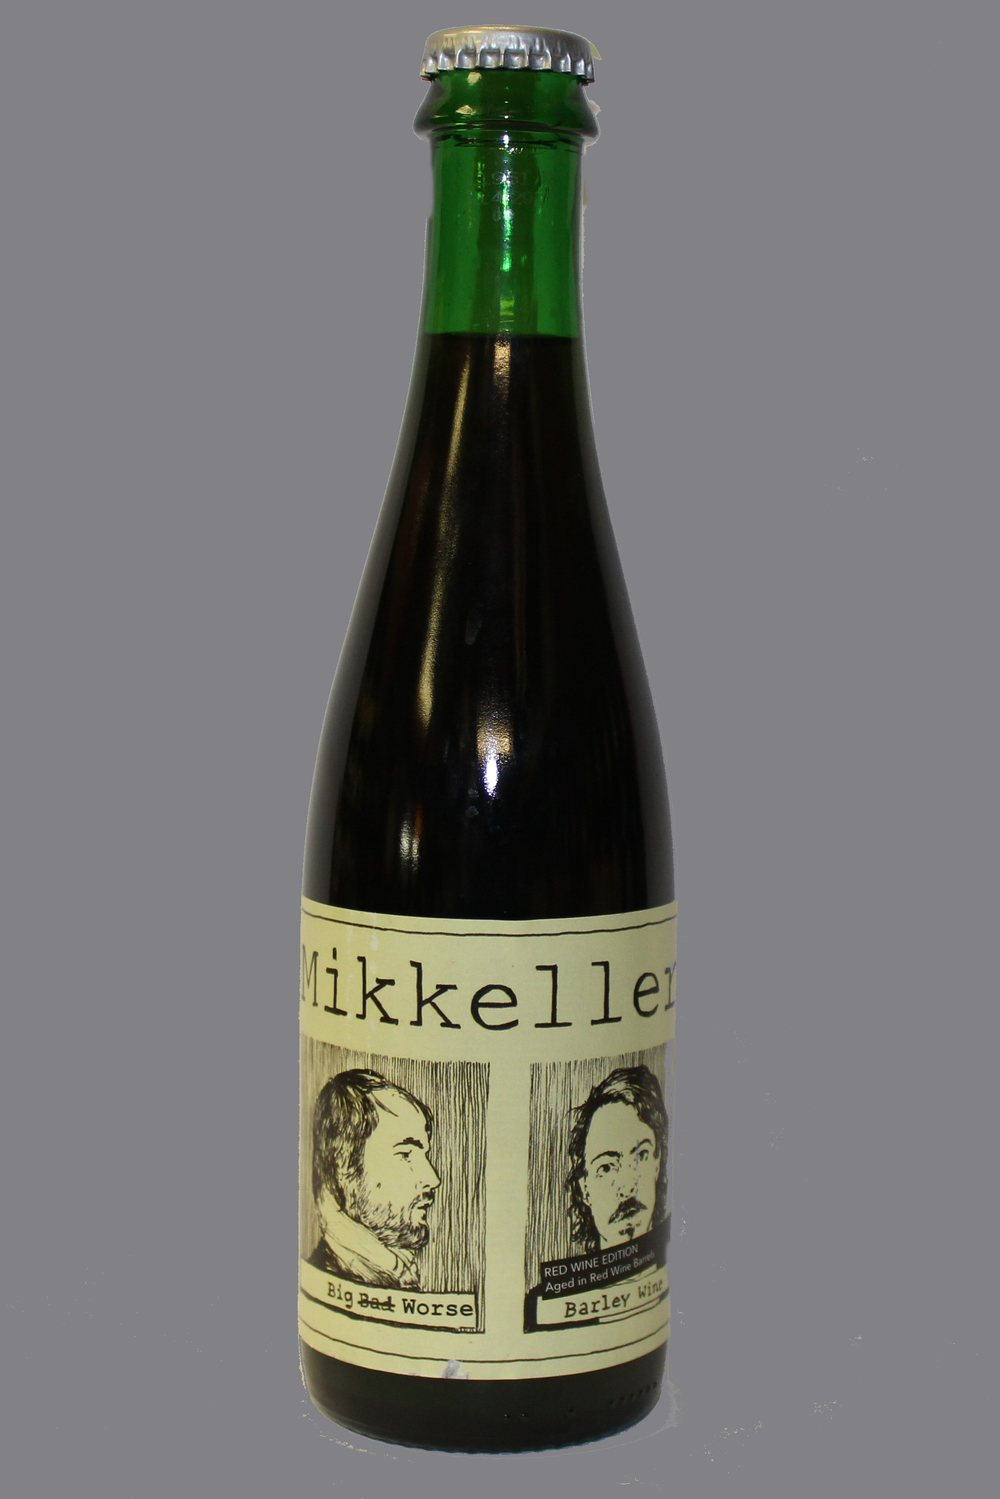 MIKKELLER-Big Worse Barley wine r-w barrel.jpg